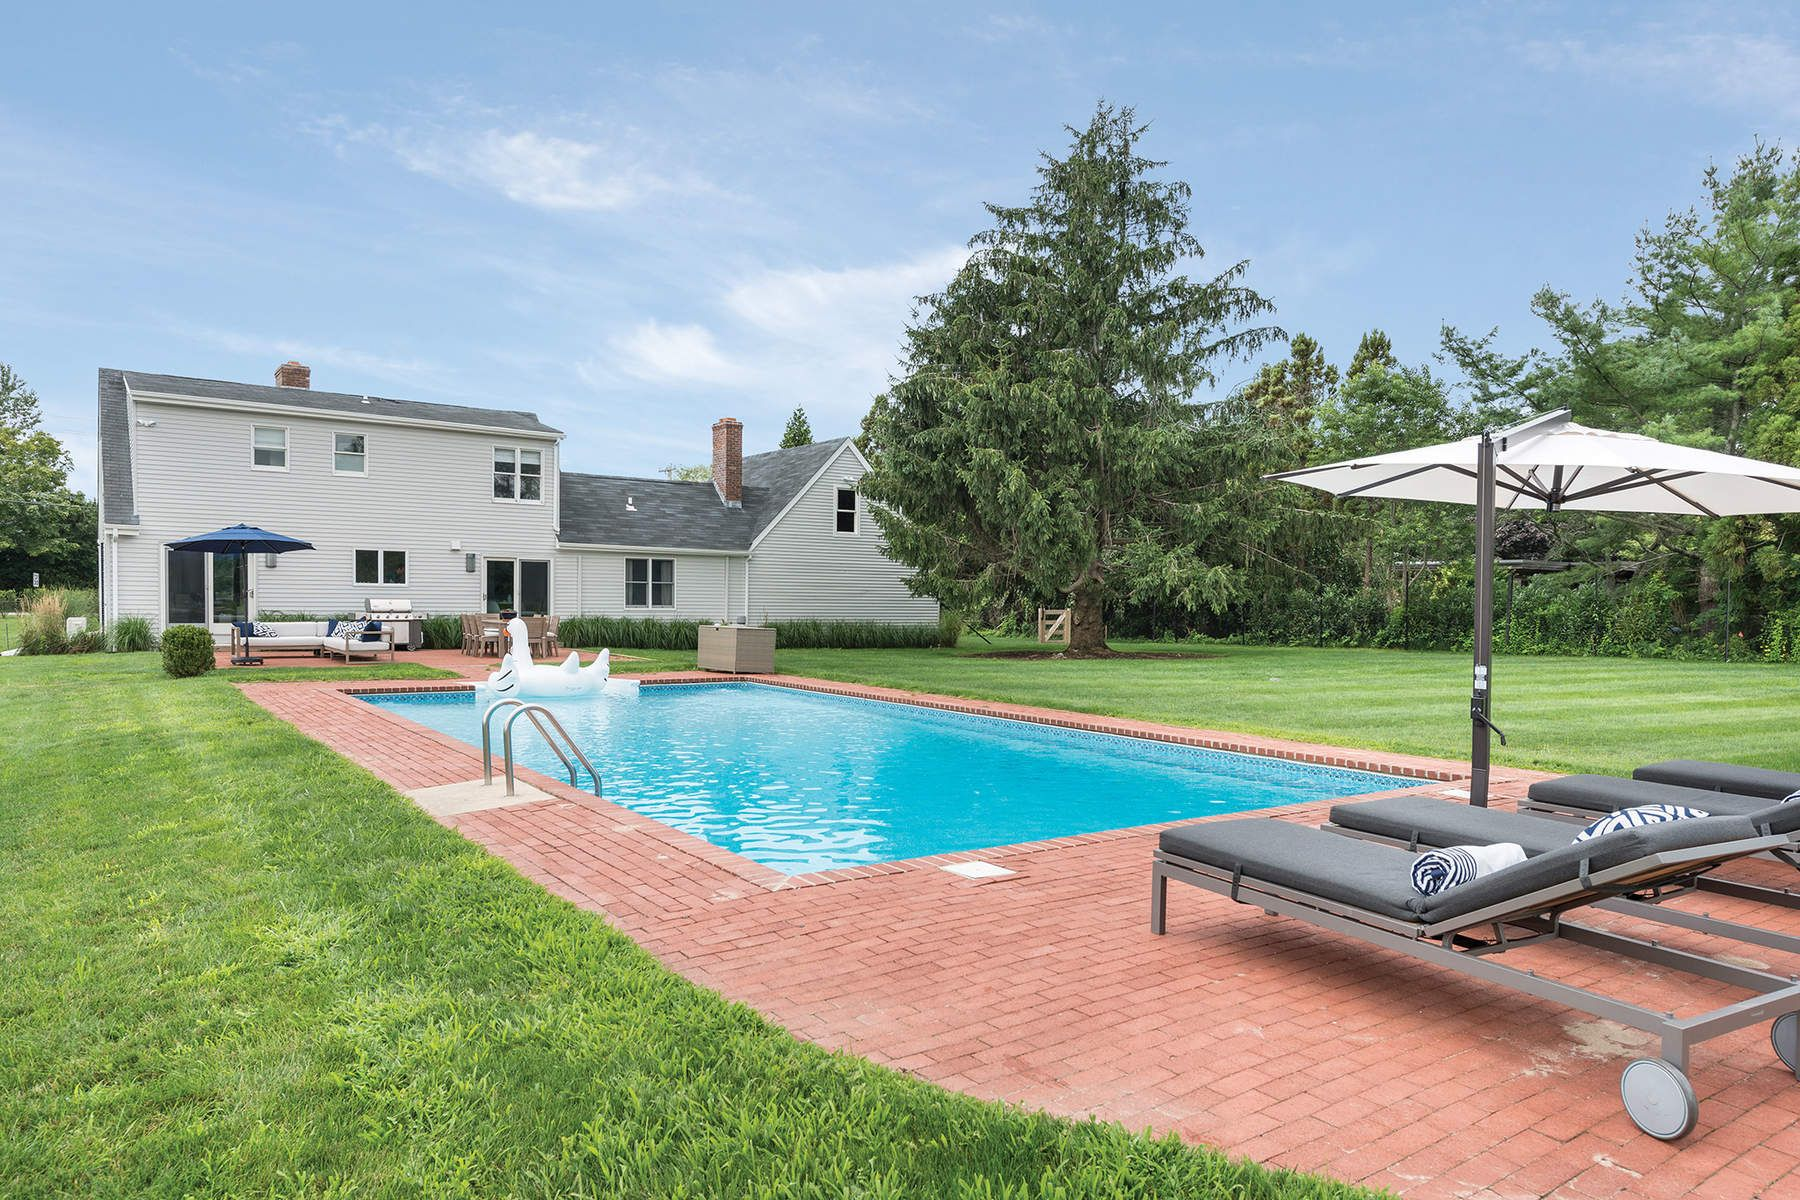 Single Family Home for Rent at Chic and Beachy Water Mill Contemporary Water Mill, New York 11976 United States